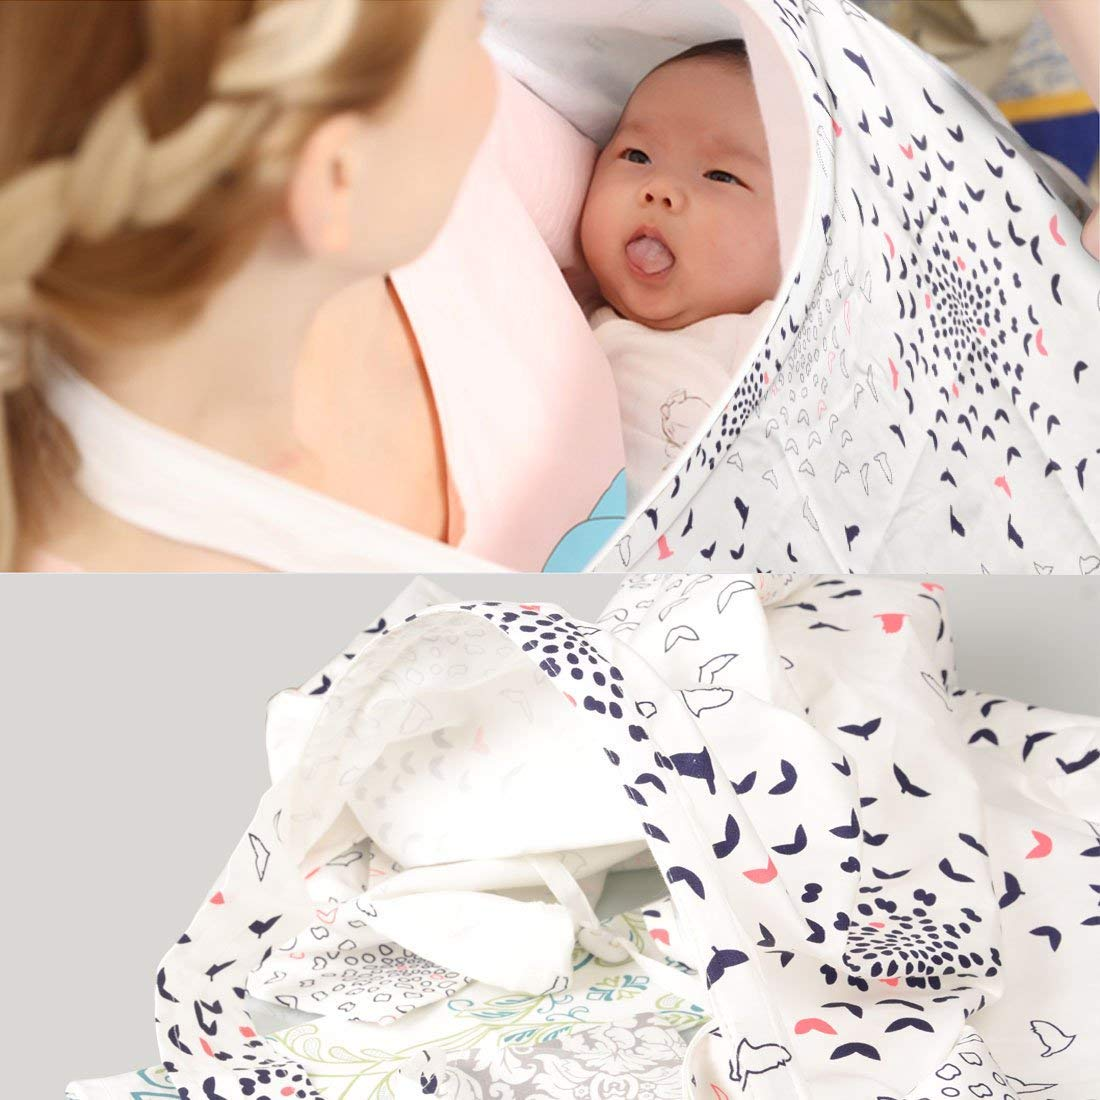 XTD Nursing Cover Seamless Breathable Breastfeeding Apron with Pockets, 100/% Natural Soft Cotton Breastfeeding Cover Adjustable Neck Strap and Boning